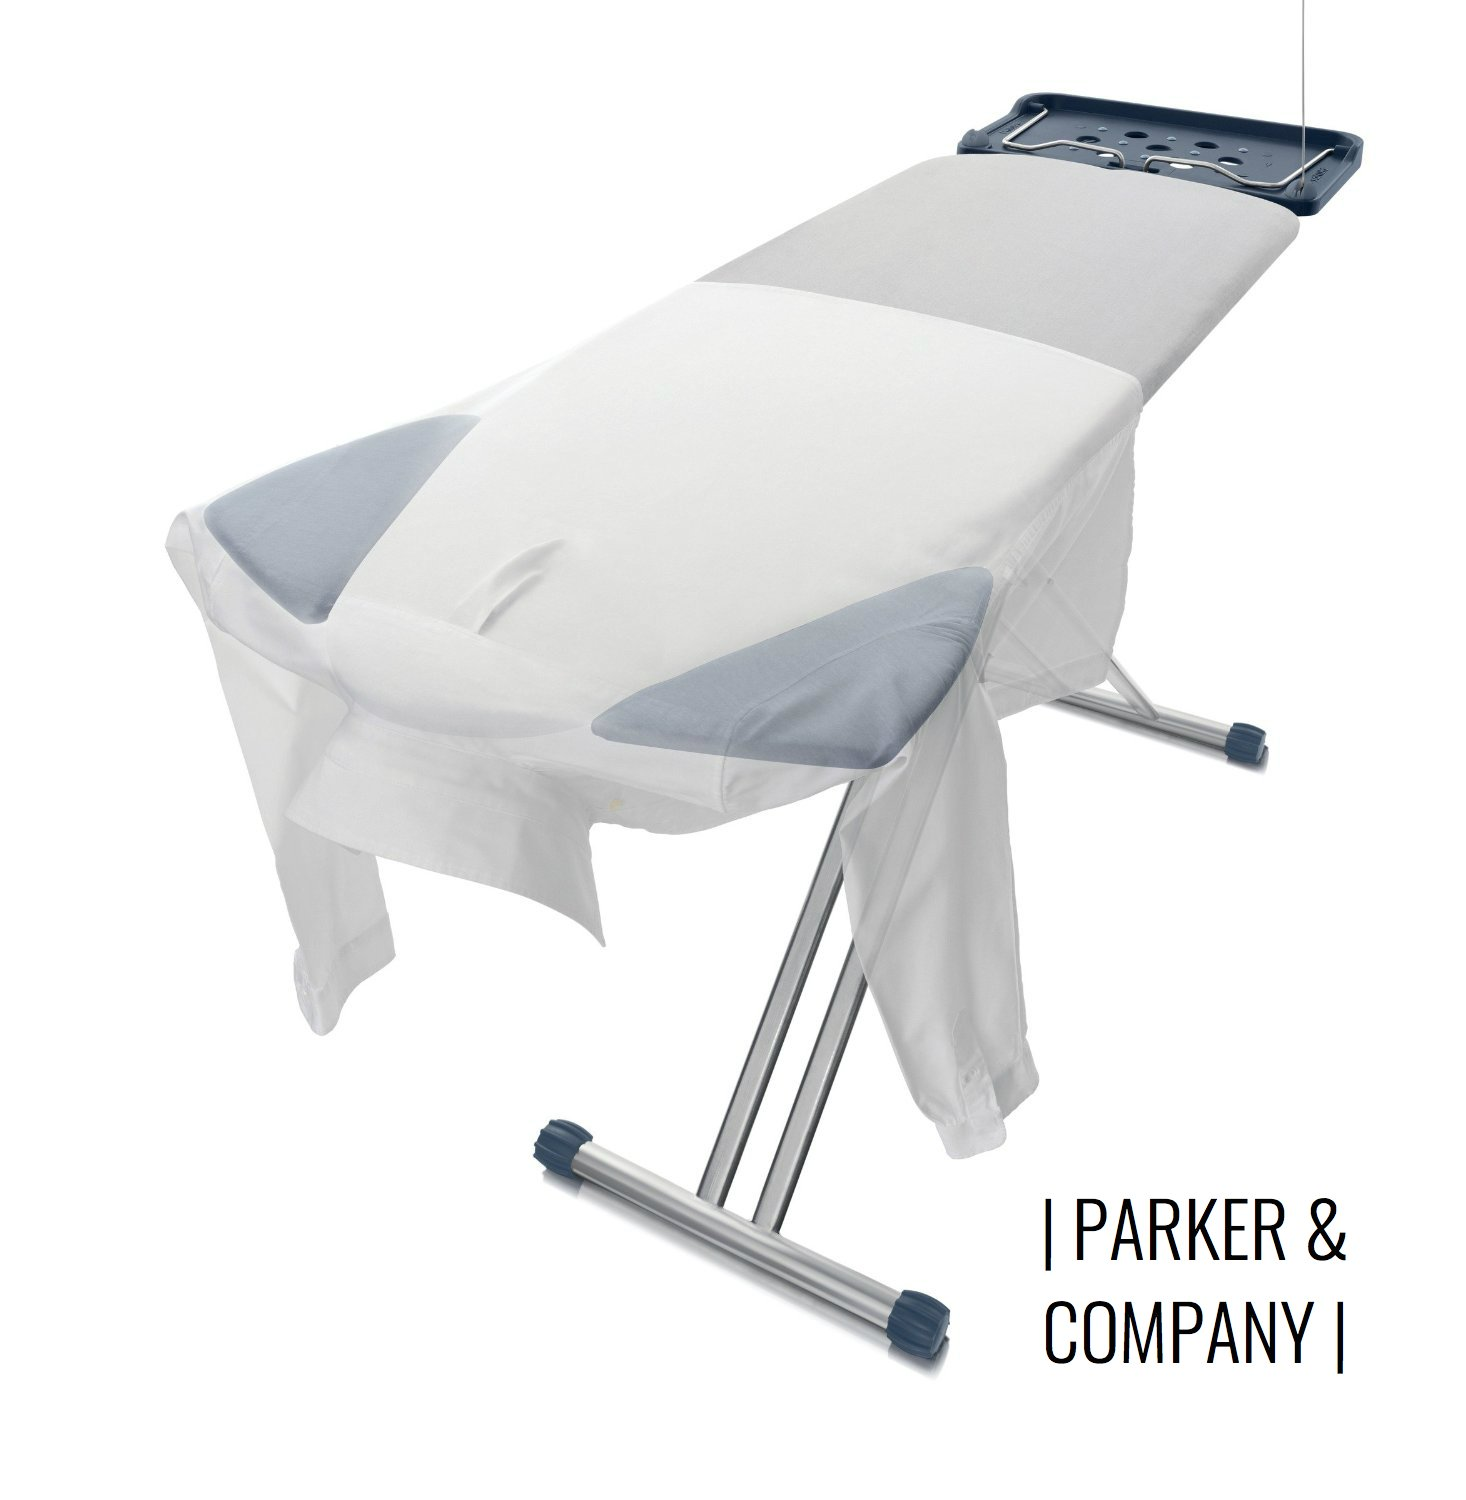 Parker Extra Wide Ironing Pro Board with Shoulder Wing Folding